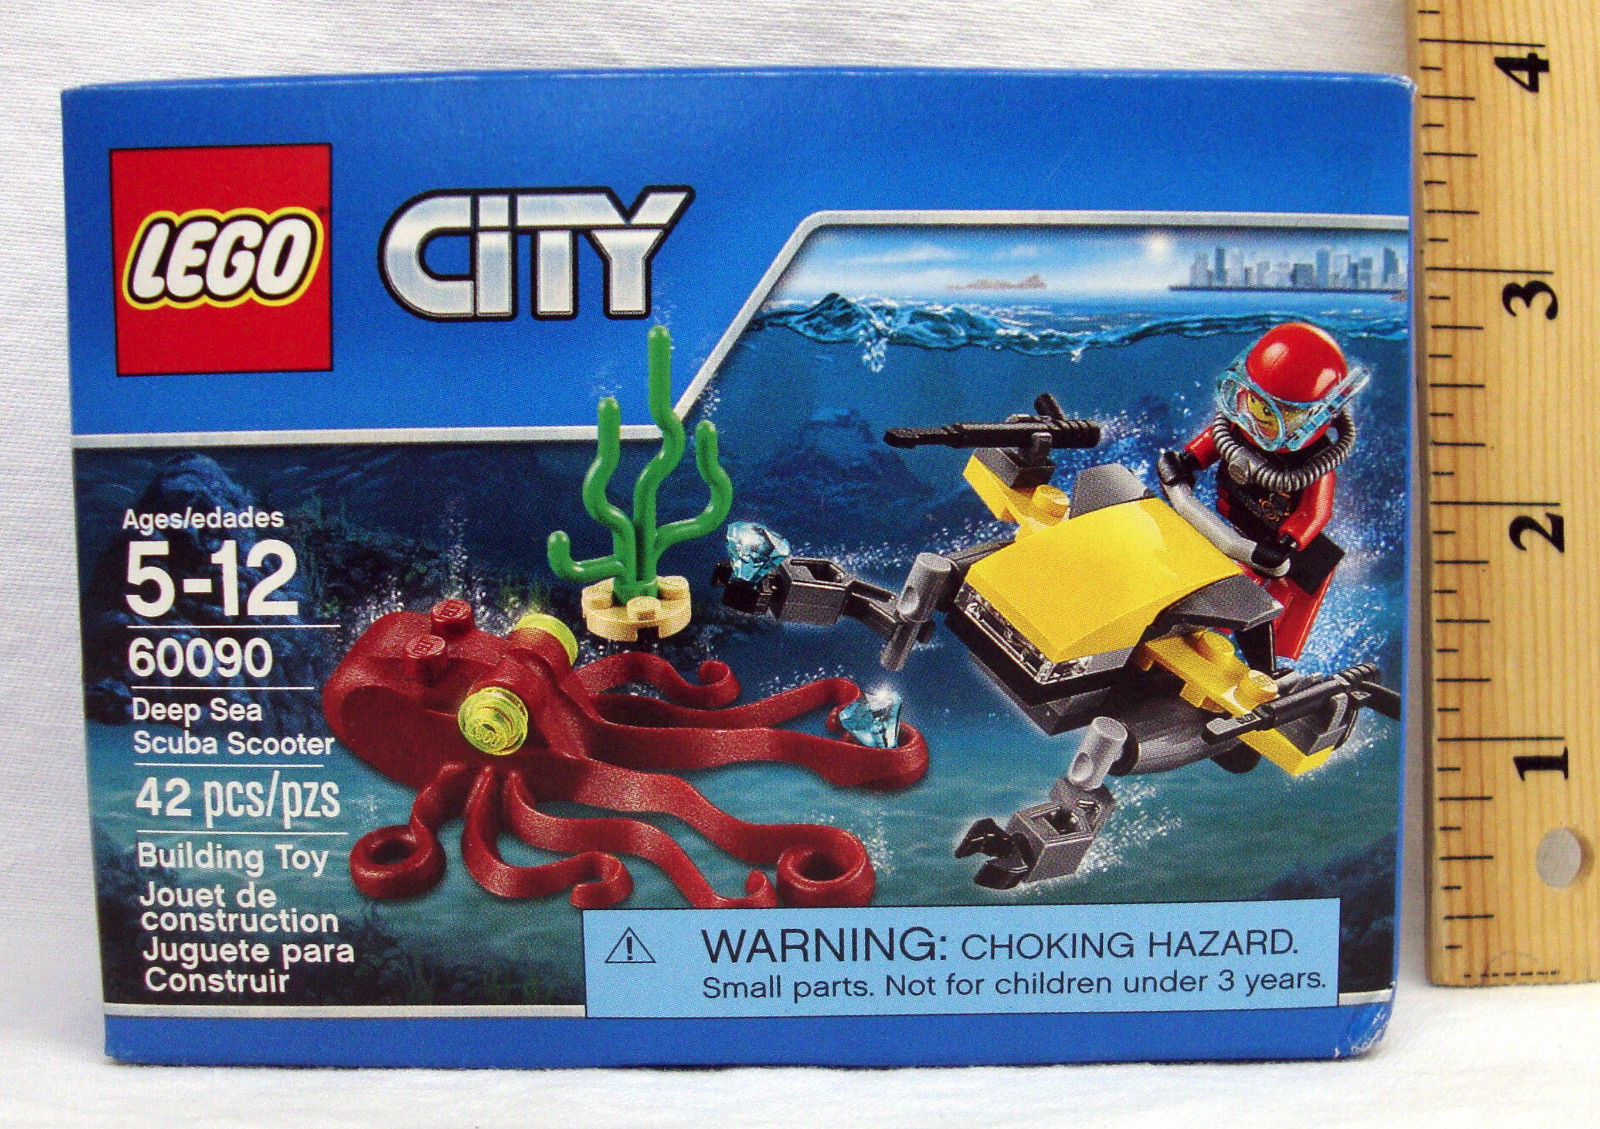 Lego City 60090 Deep Sea Scuba Scooter 42 and 10 similar items. S l1600